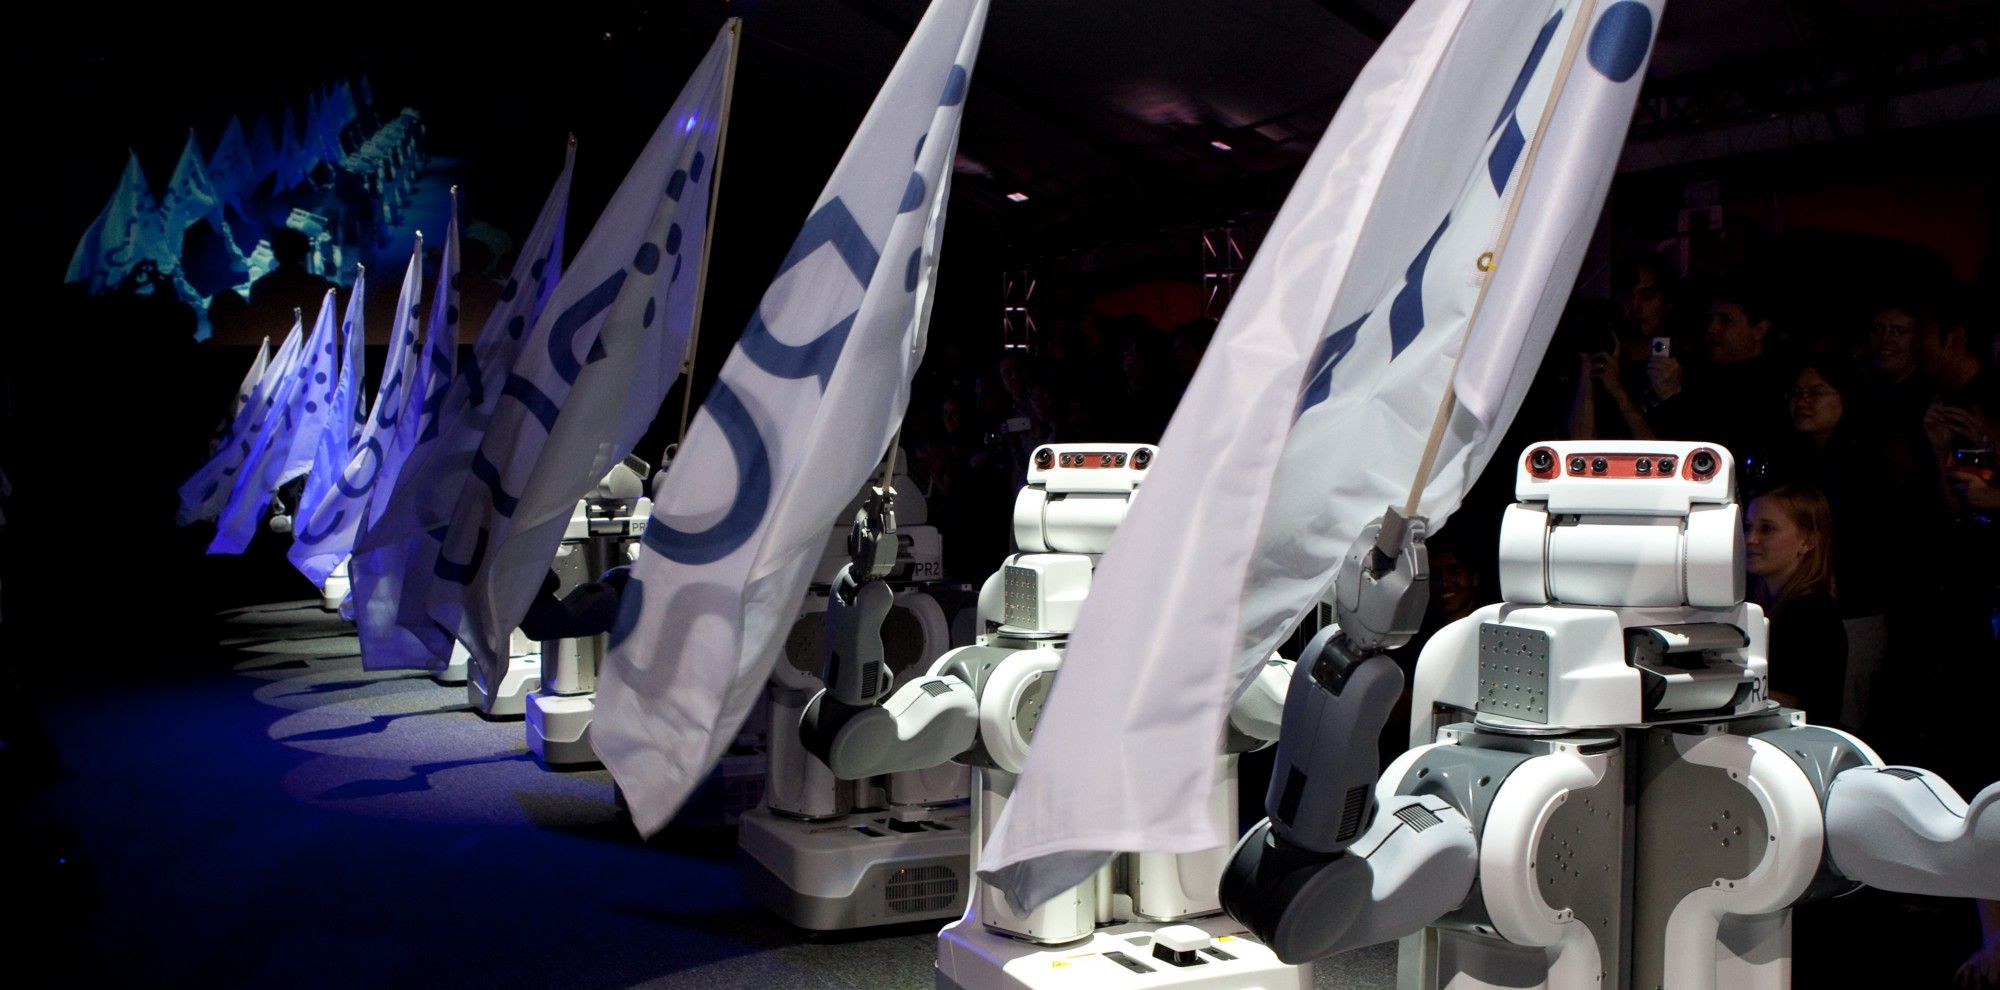 PR2 robots flying ROS flags in 2010.